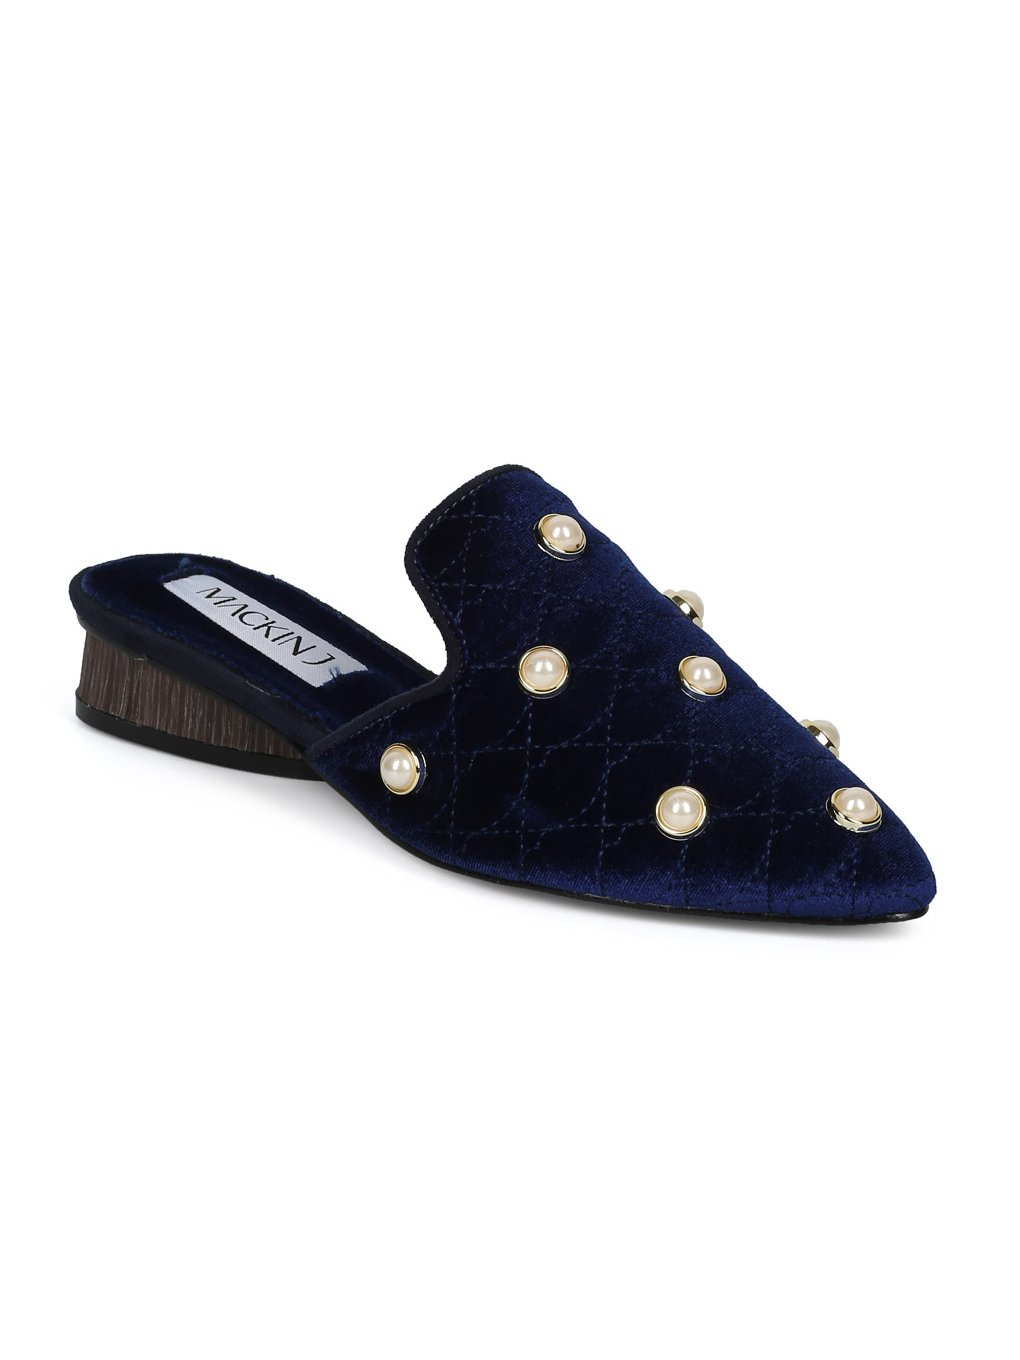 Alrisco Women Quilted Velvet Faux Pearl Pointy Toe Low Heel Mule HE91 - Navy Velvet (Size: 9.0) by Alrisco (Image #1)